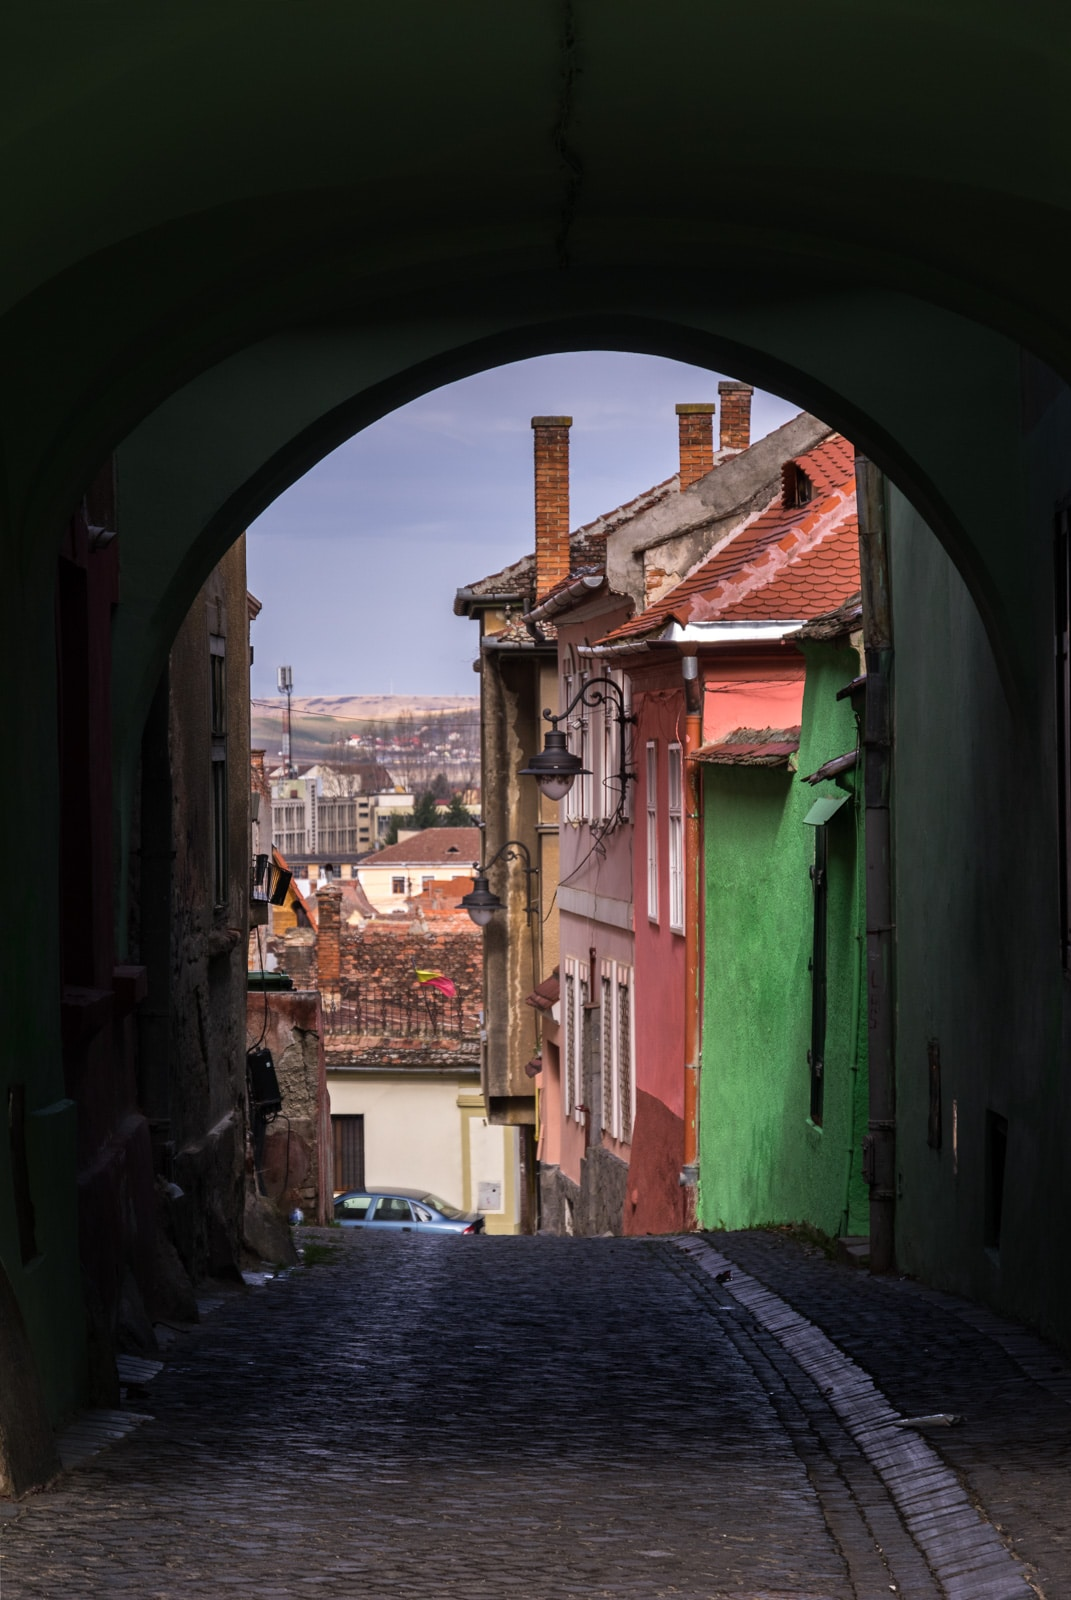 Sibiu is a city that concentrates the romanticism of a past era along with the mysticism of Transylvania. A jewel among all European medieval cities.